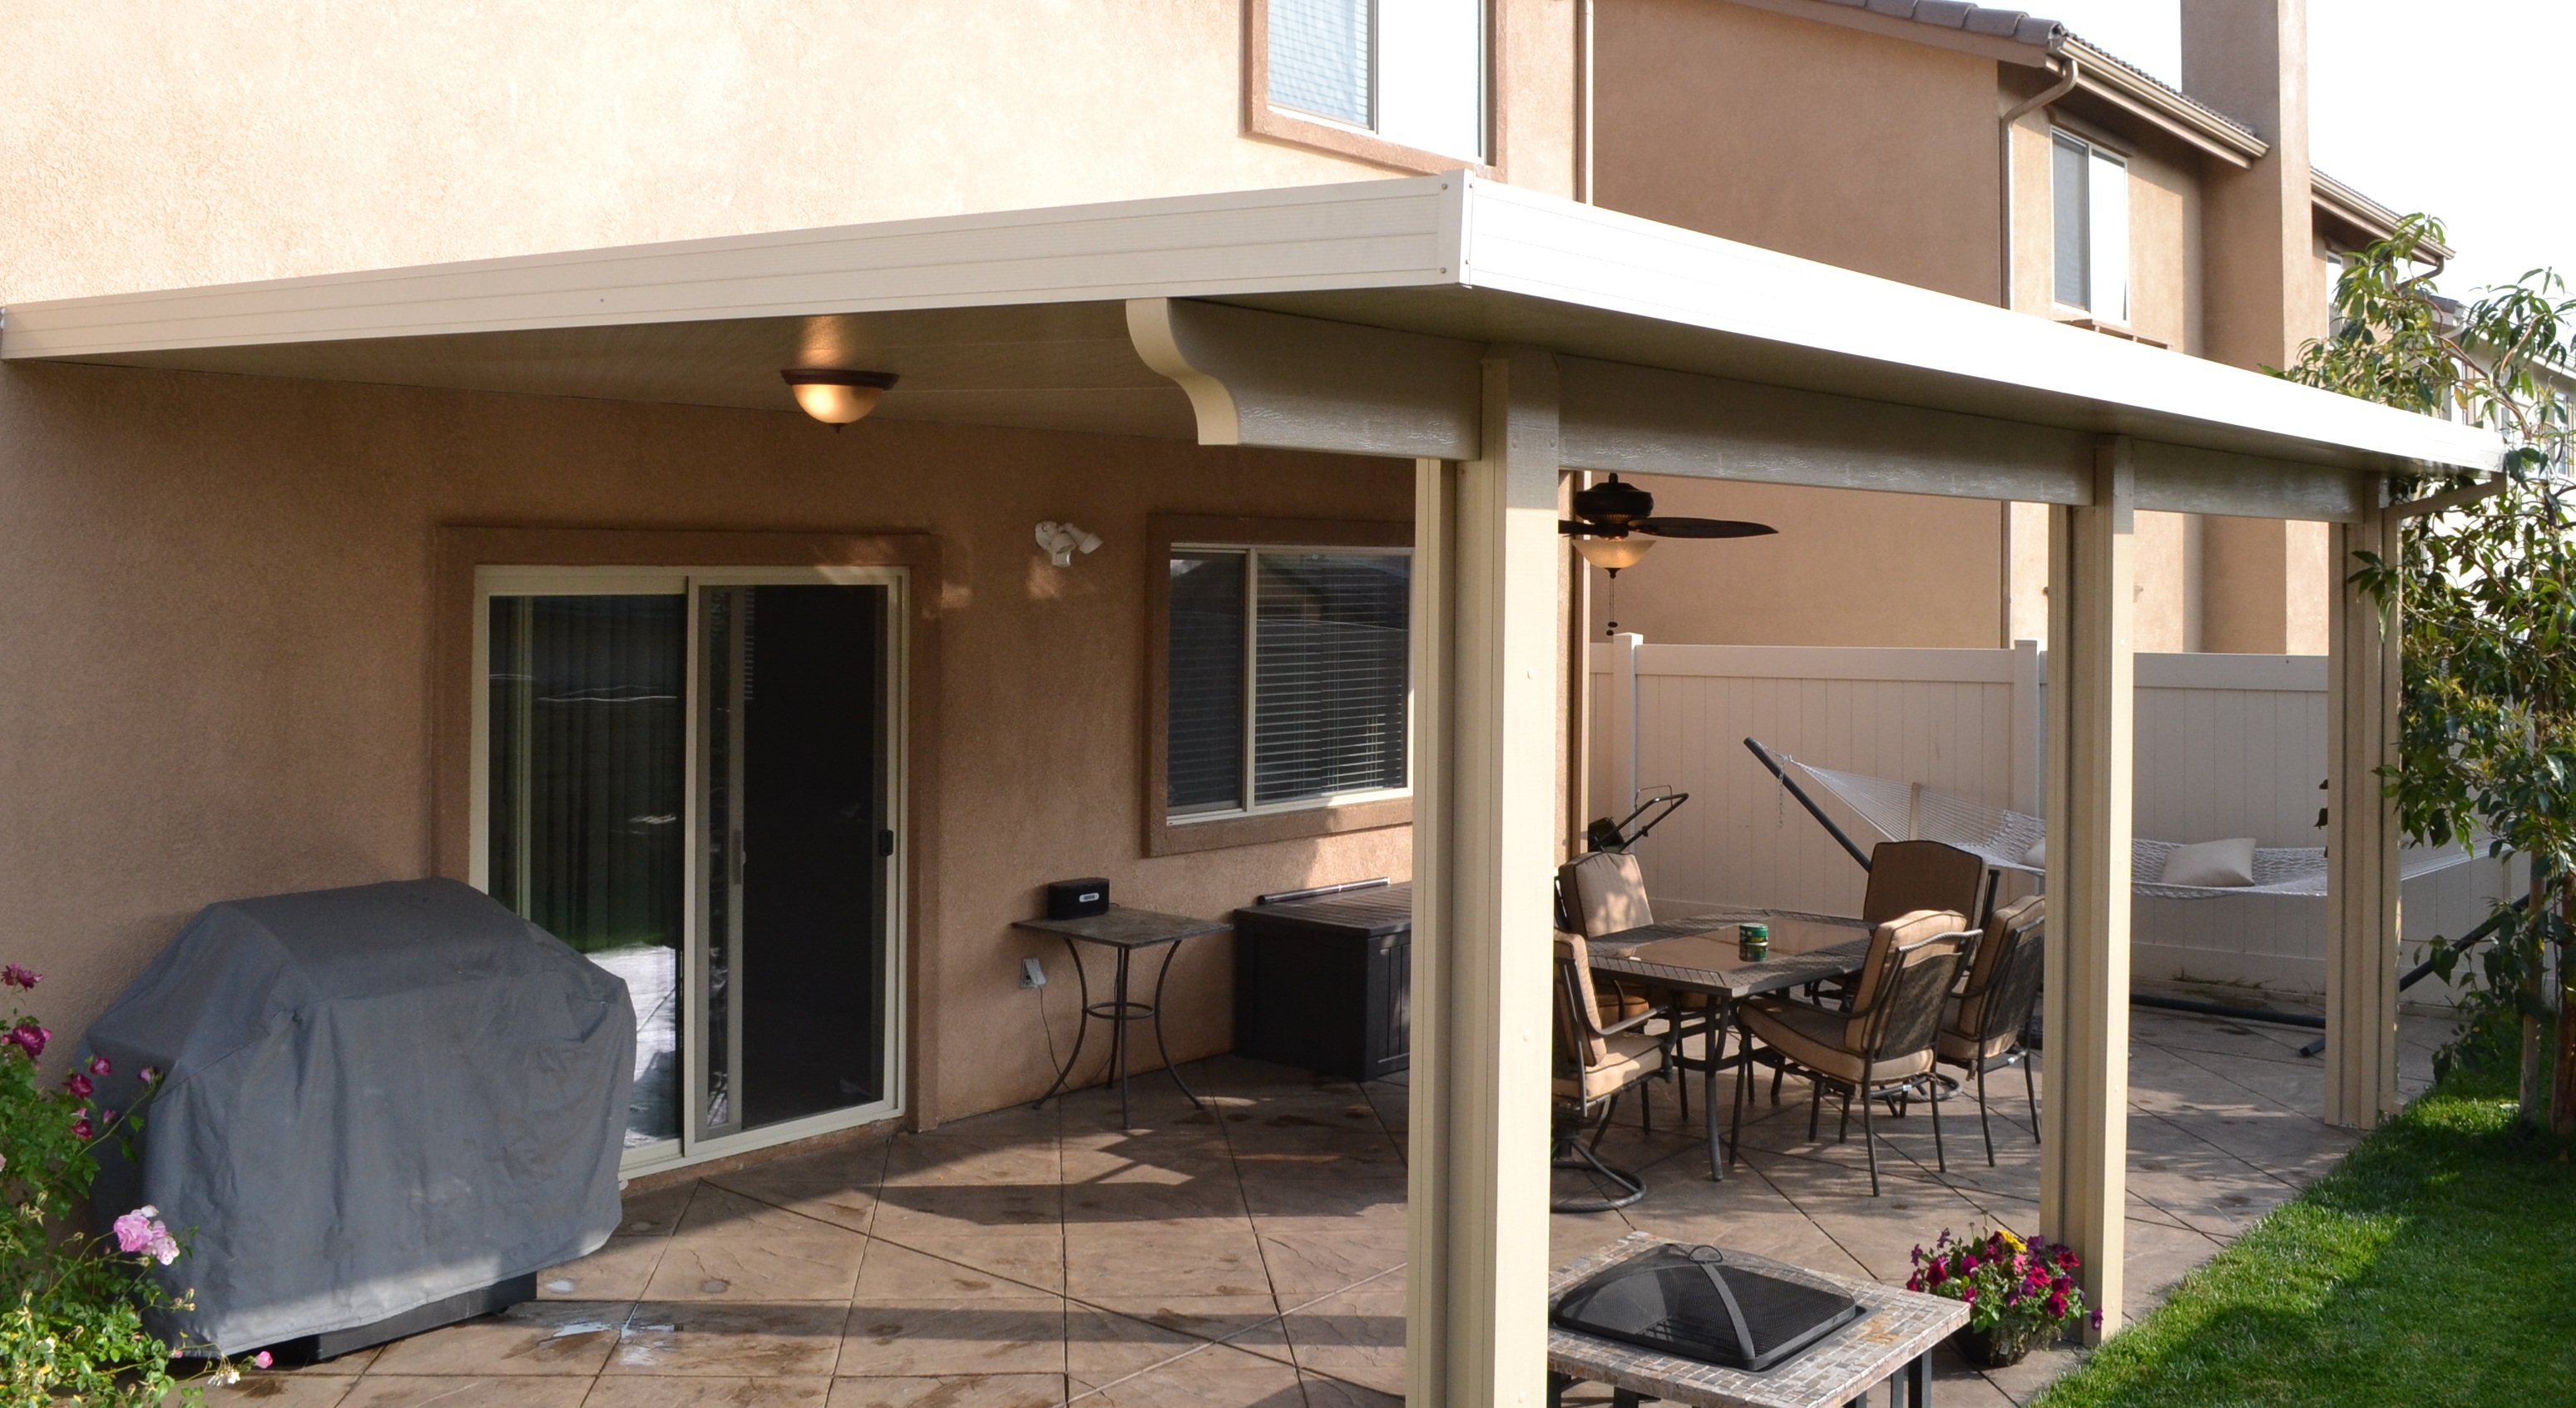 Wood Patio Covers | Perfect for Every Home! on Patio Cover Ideas Wood id=89366